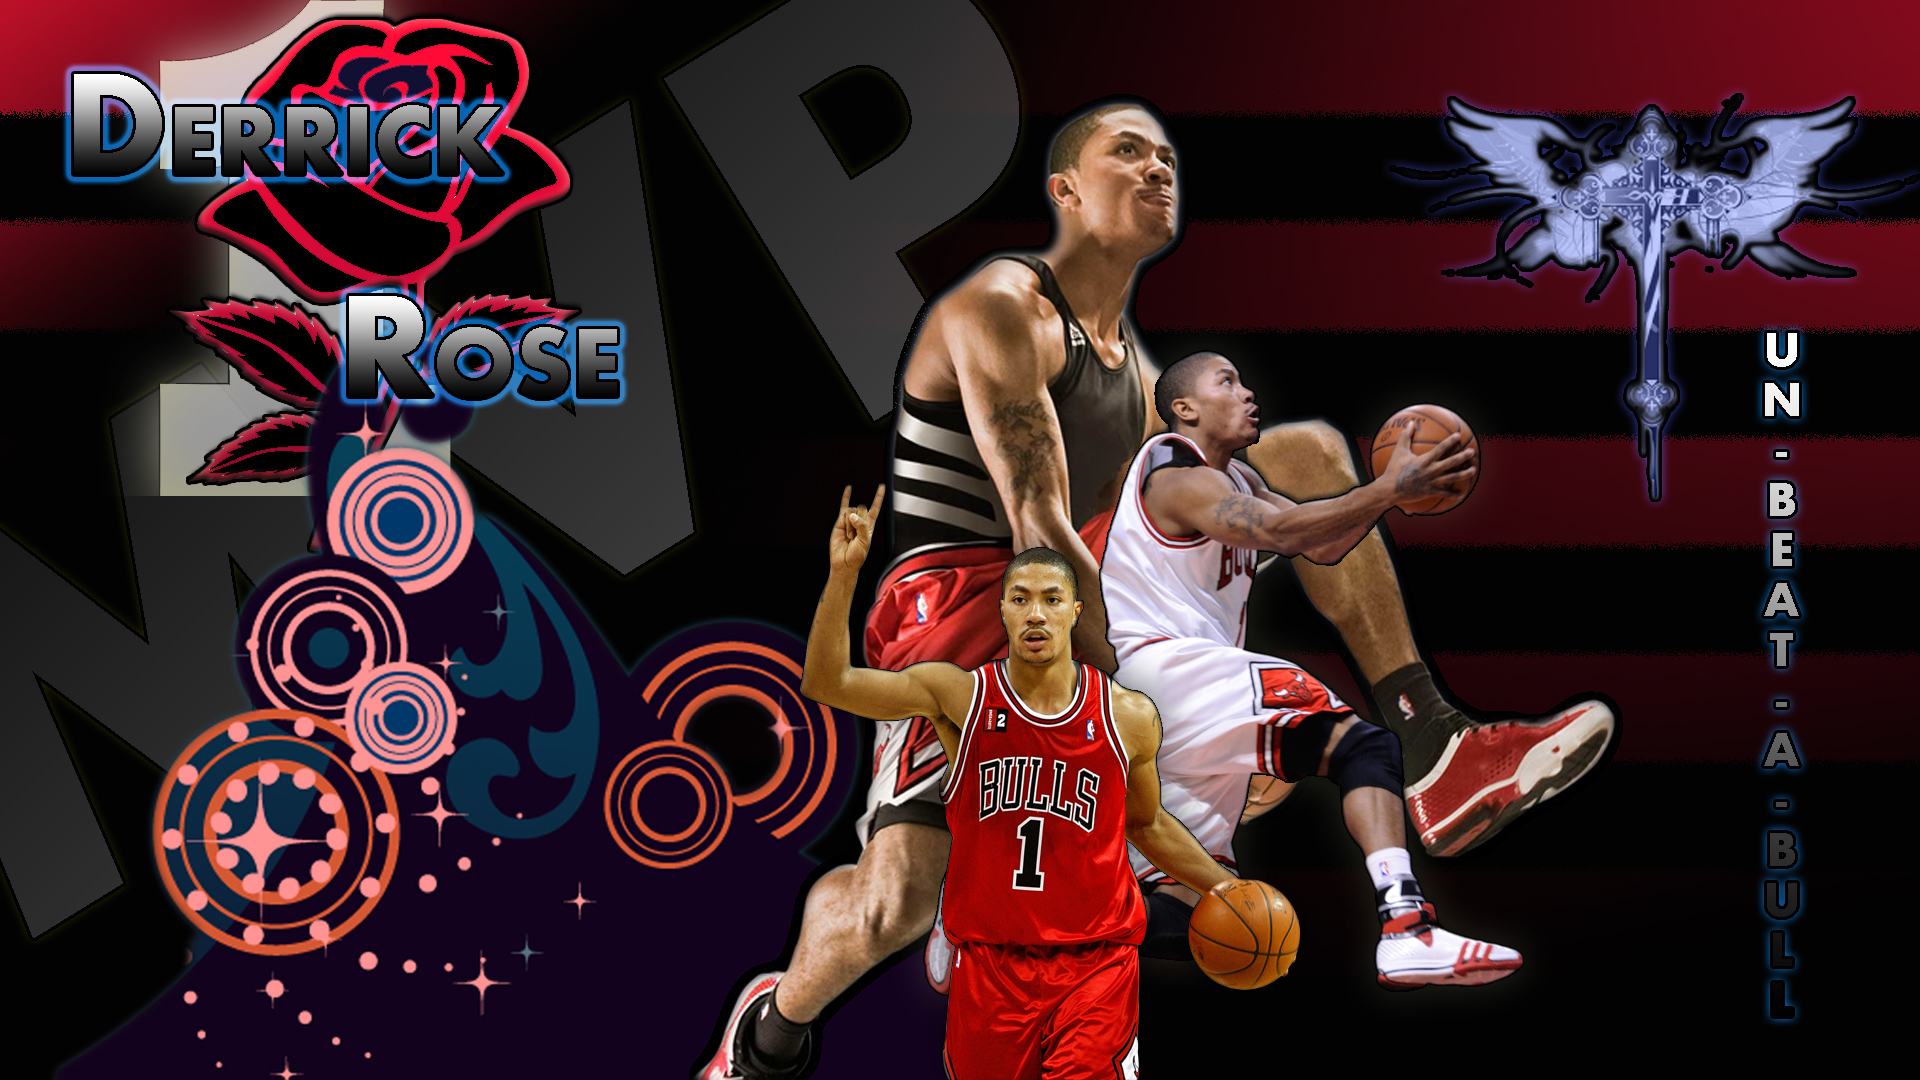 Derrick Rose Unbeatable by duyvu2 1920 x 1080 1920x1080